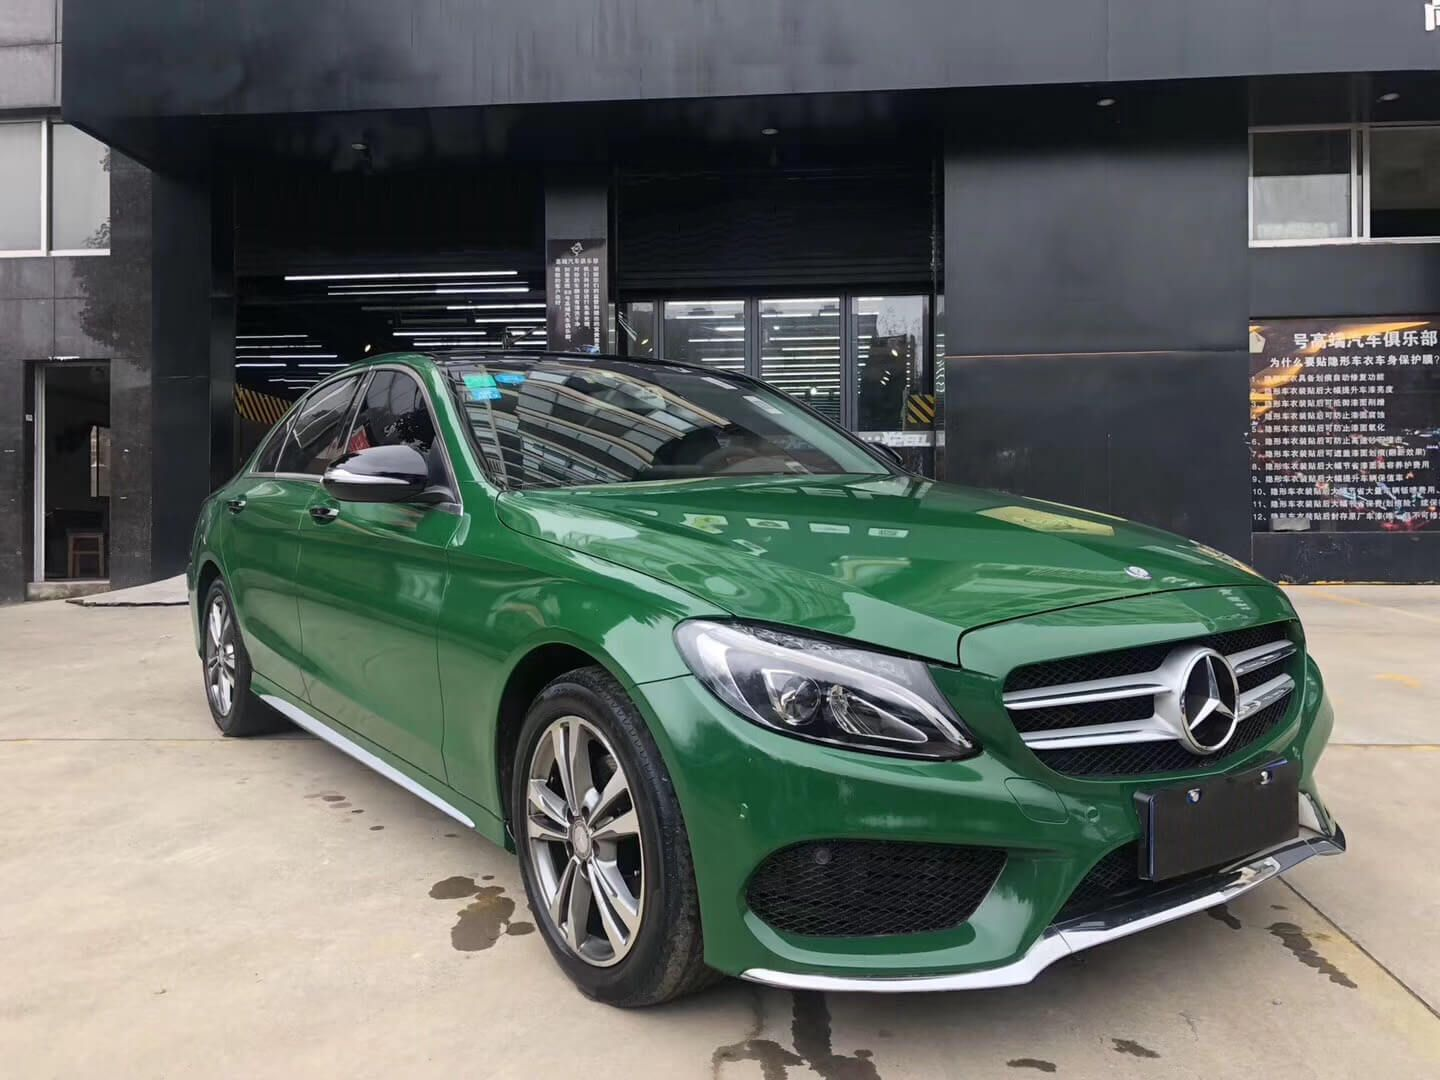 Olive Green Gloss Crystal Wrap in 2020